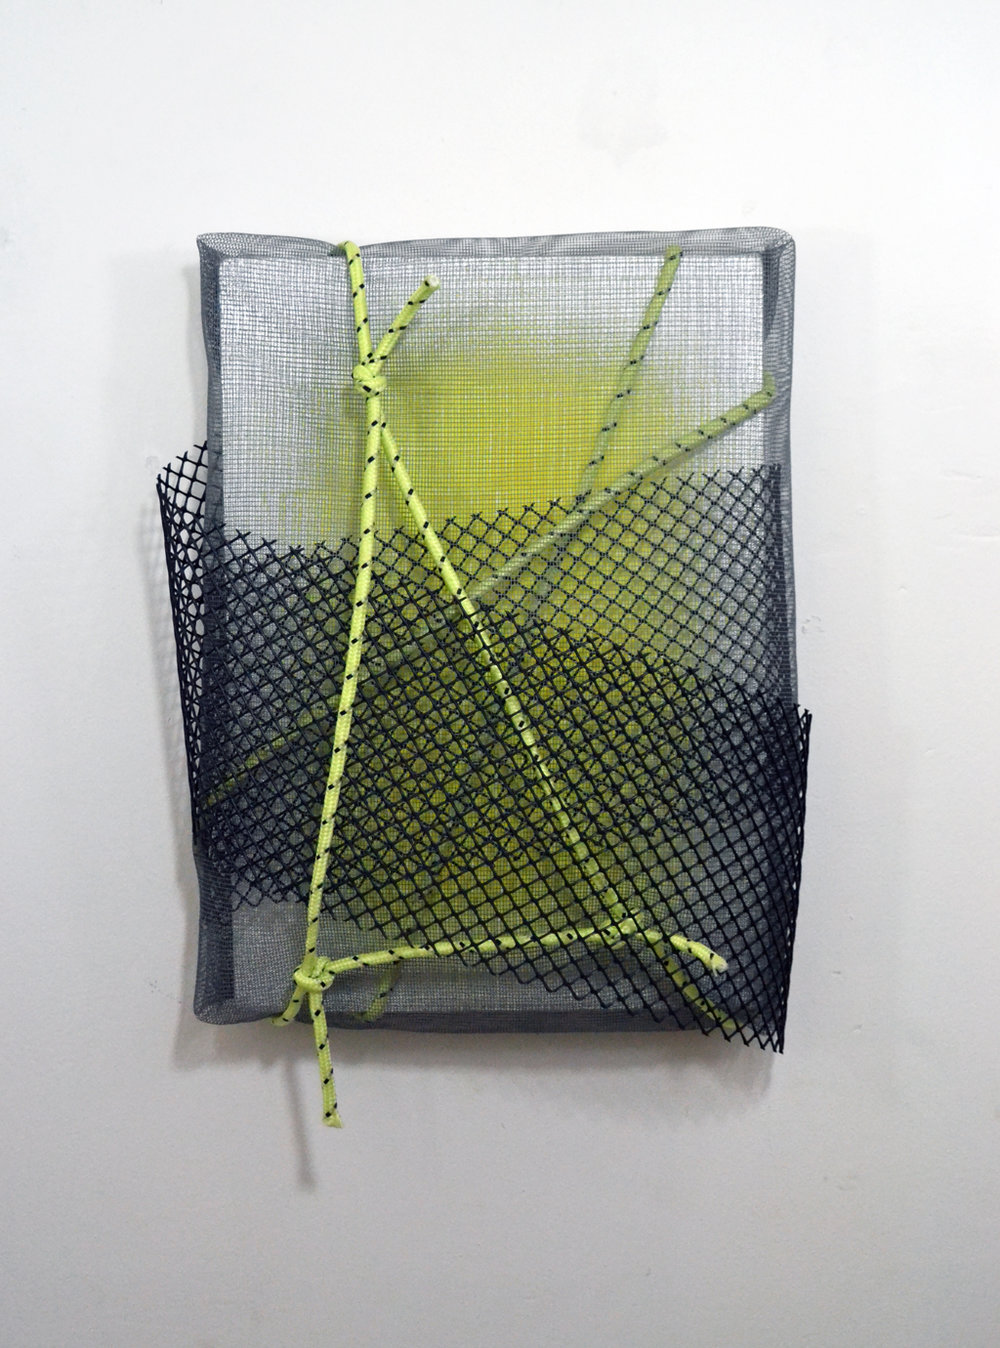 Tempered , spray paint, plastic netting, and paracord on canvas, 12 x 15 x 4 inches